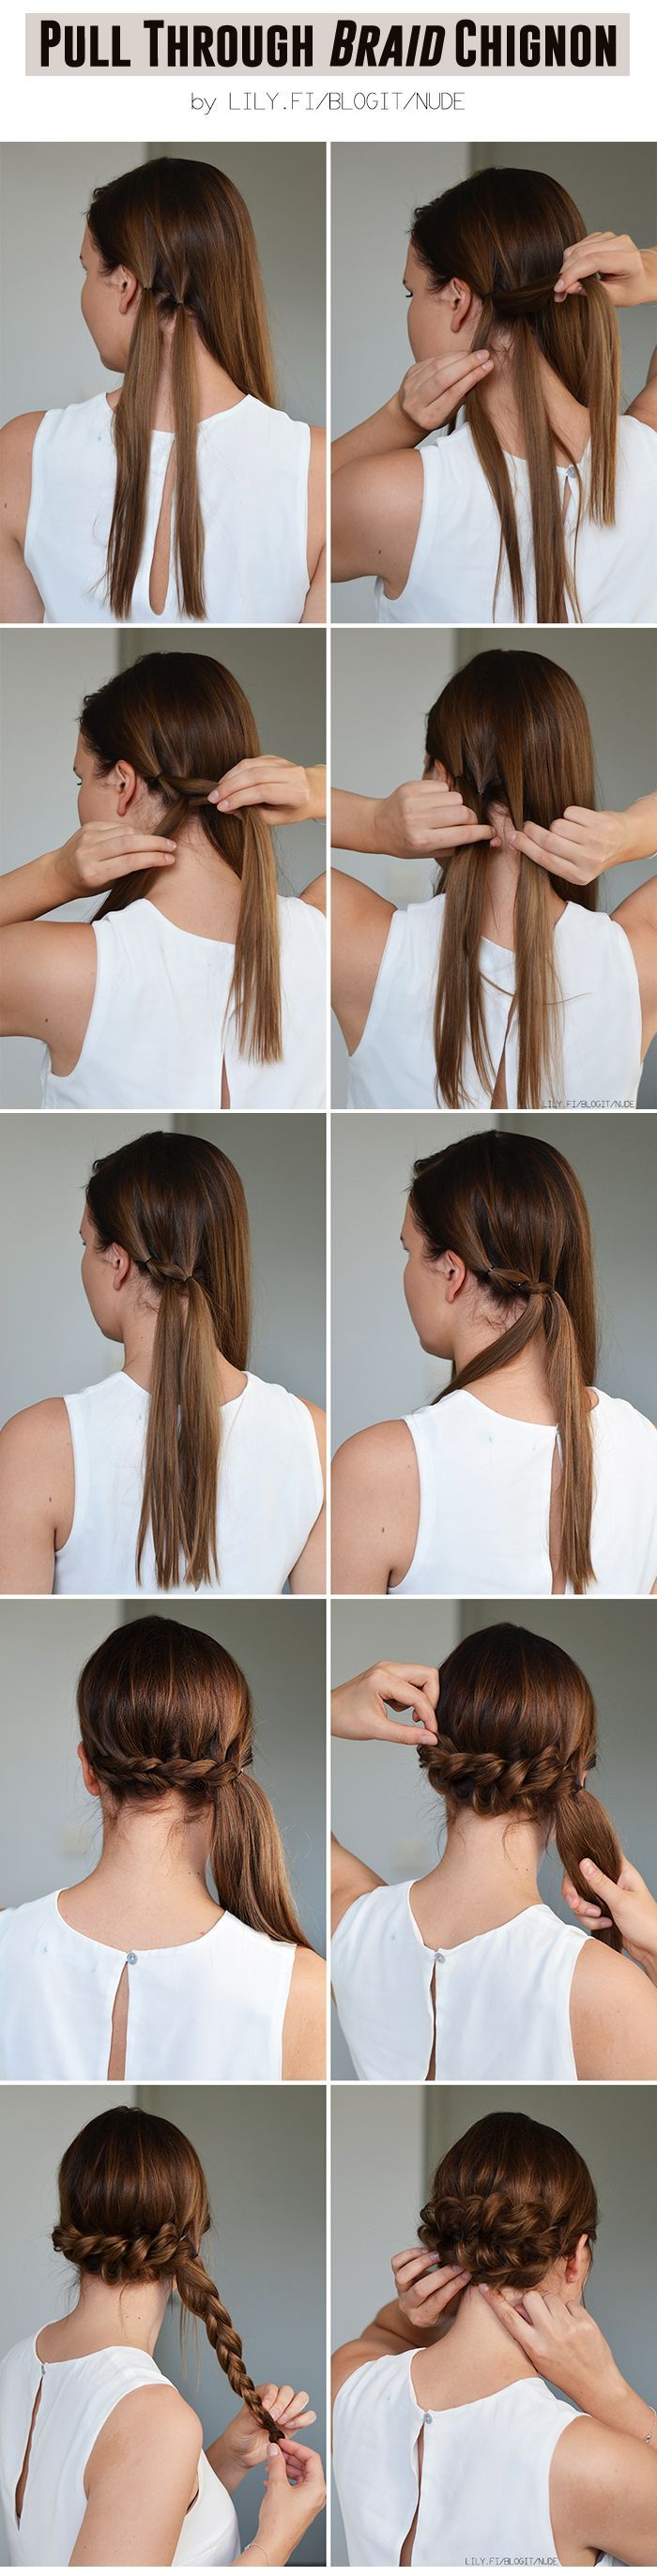 Pull Through Braid Chignon for a wedding or on a date